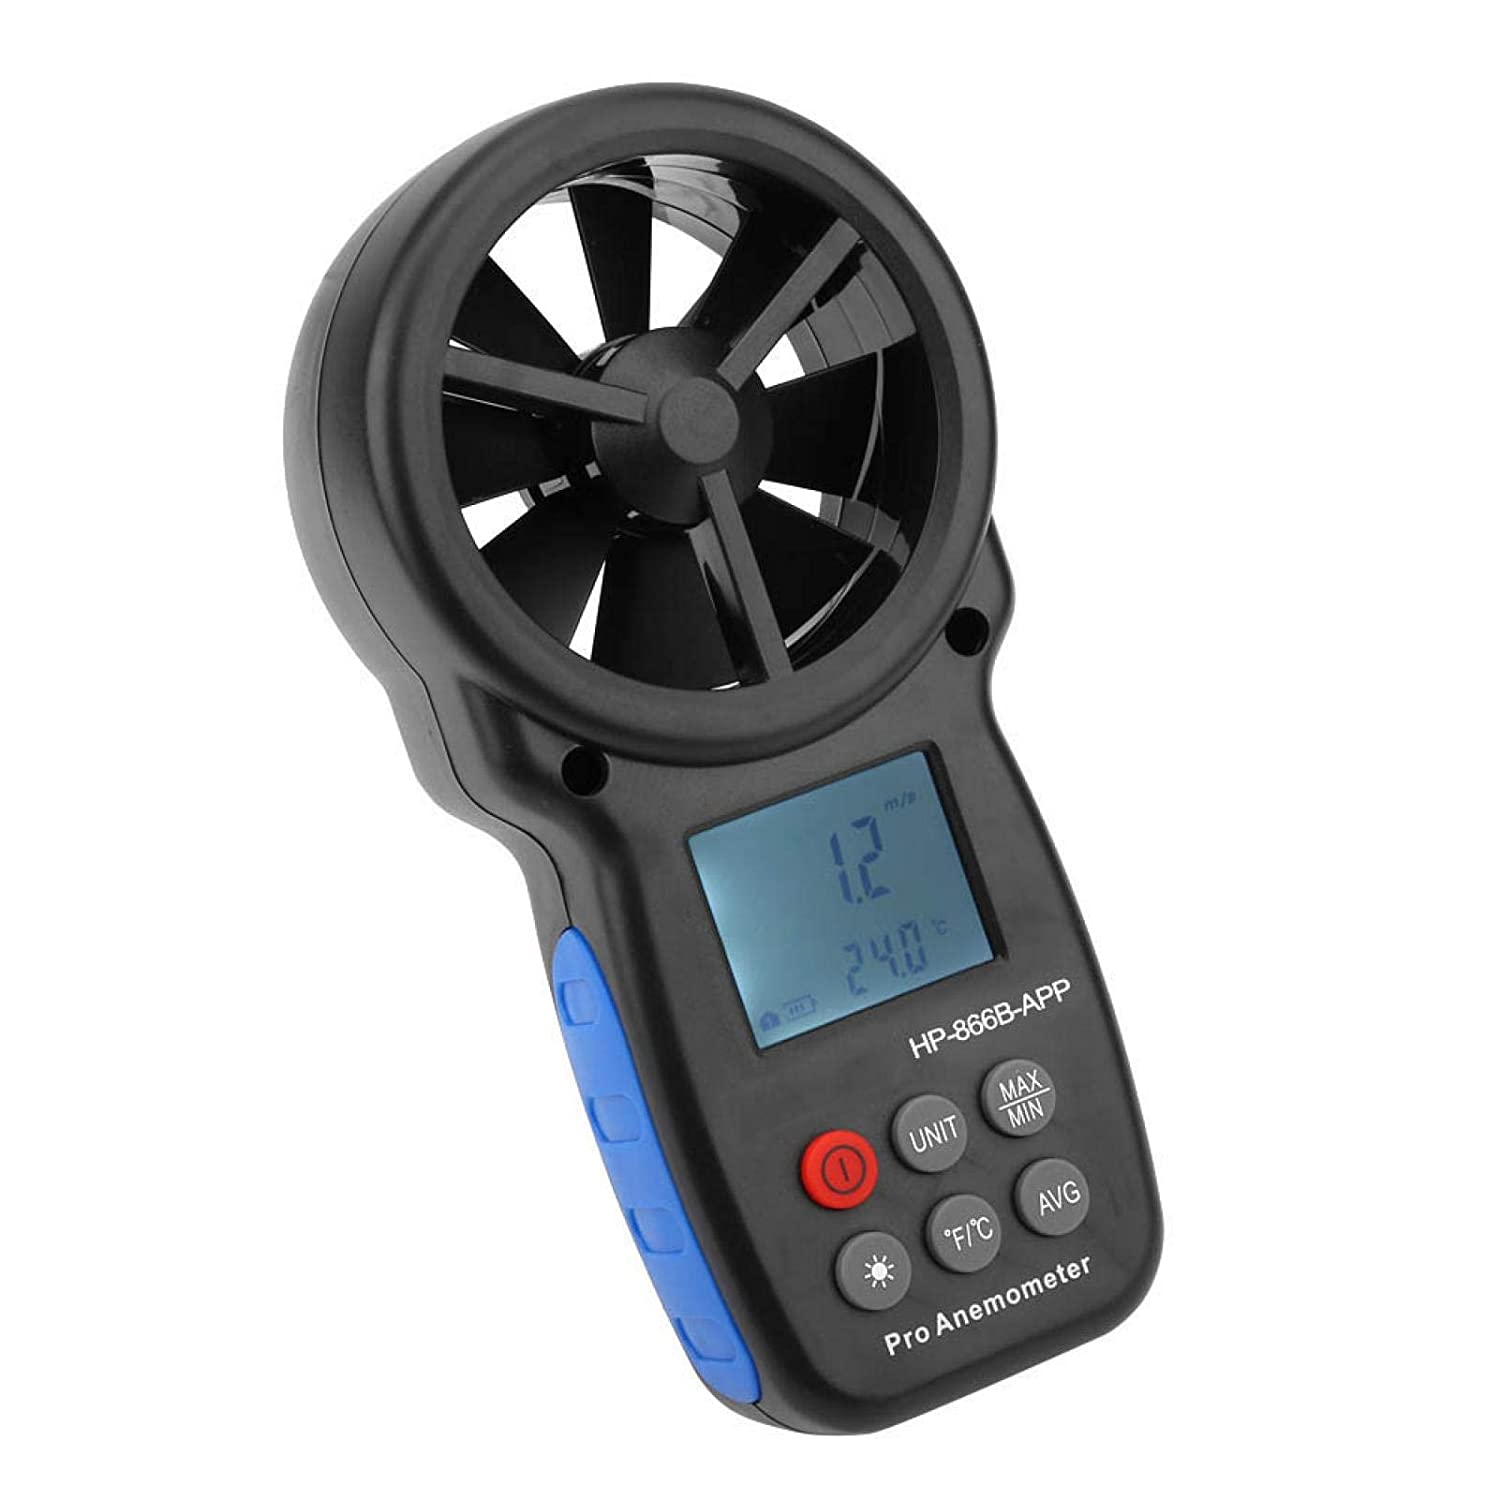 Wind Chill Max 56% OFF Same day shipping Gauge Handheld Speed Anemometer Fl Meter USB Air